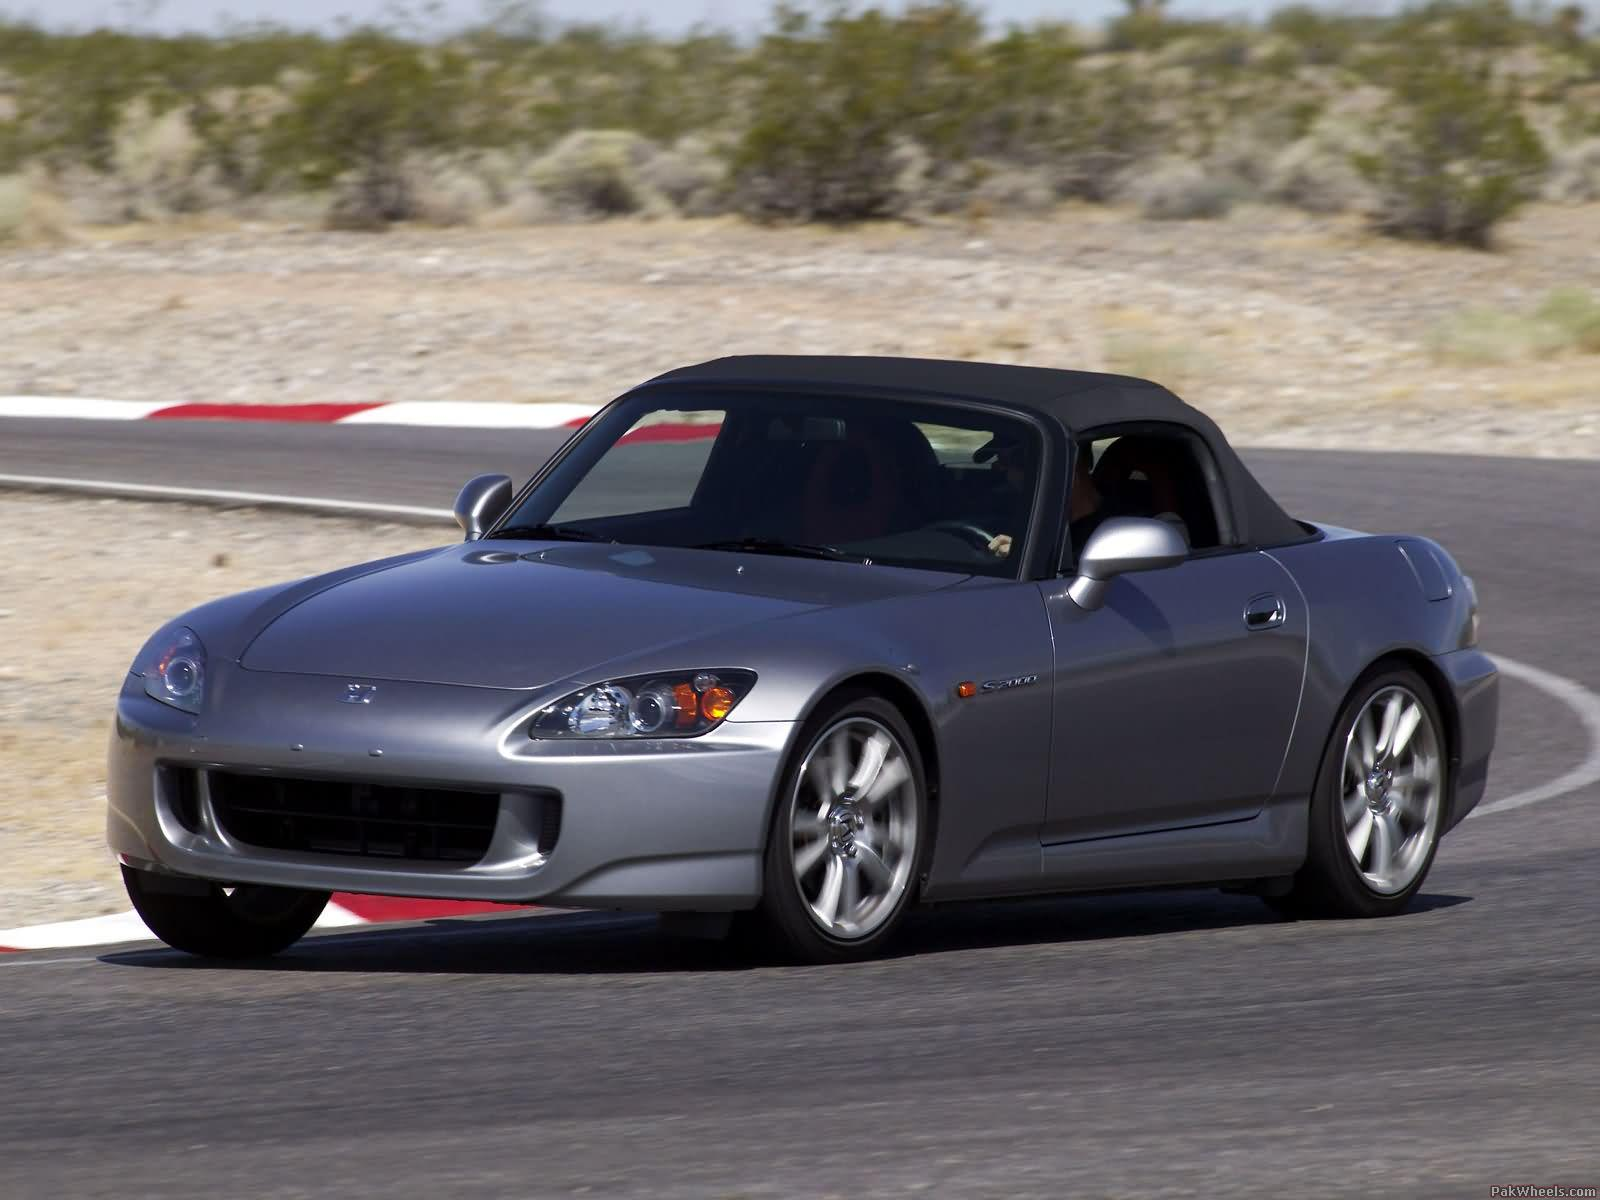 Car trends honda s2000 picste 2011 for Honda car 2000